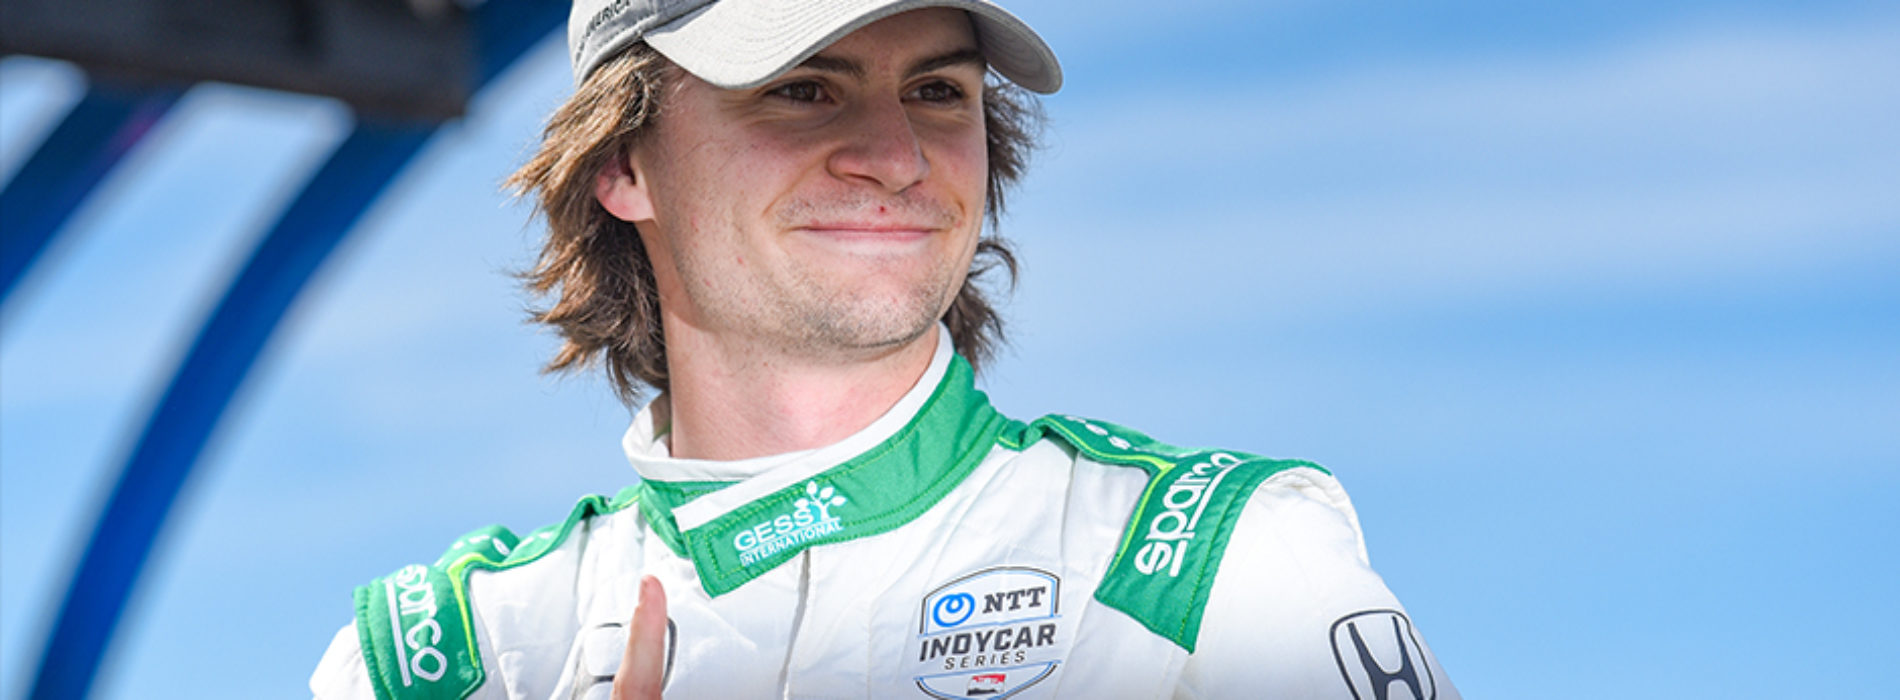 HERTA ADDS YOUNGEST INDY CAR POLE WINNER TO ACHIEVEMENTS